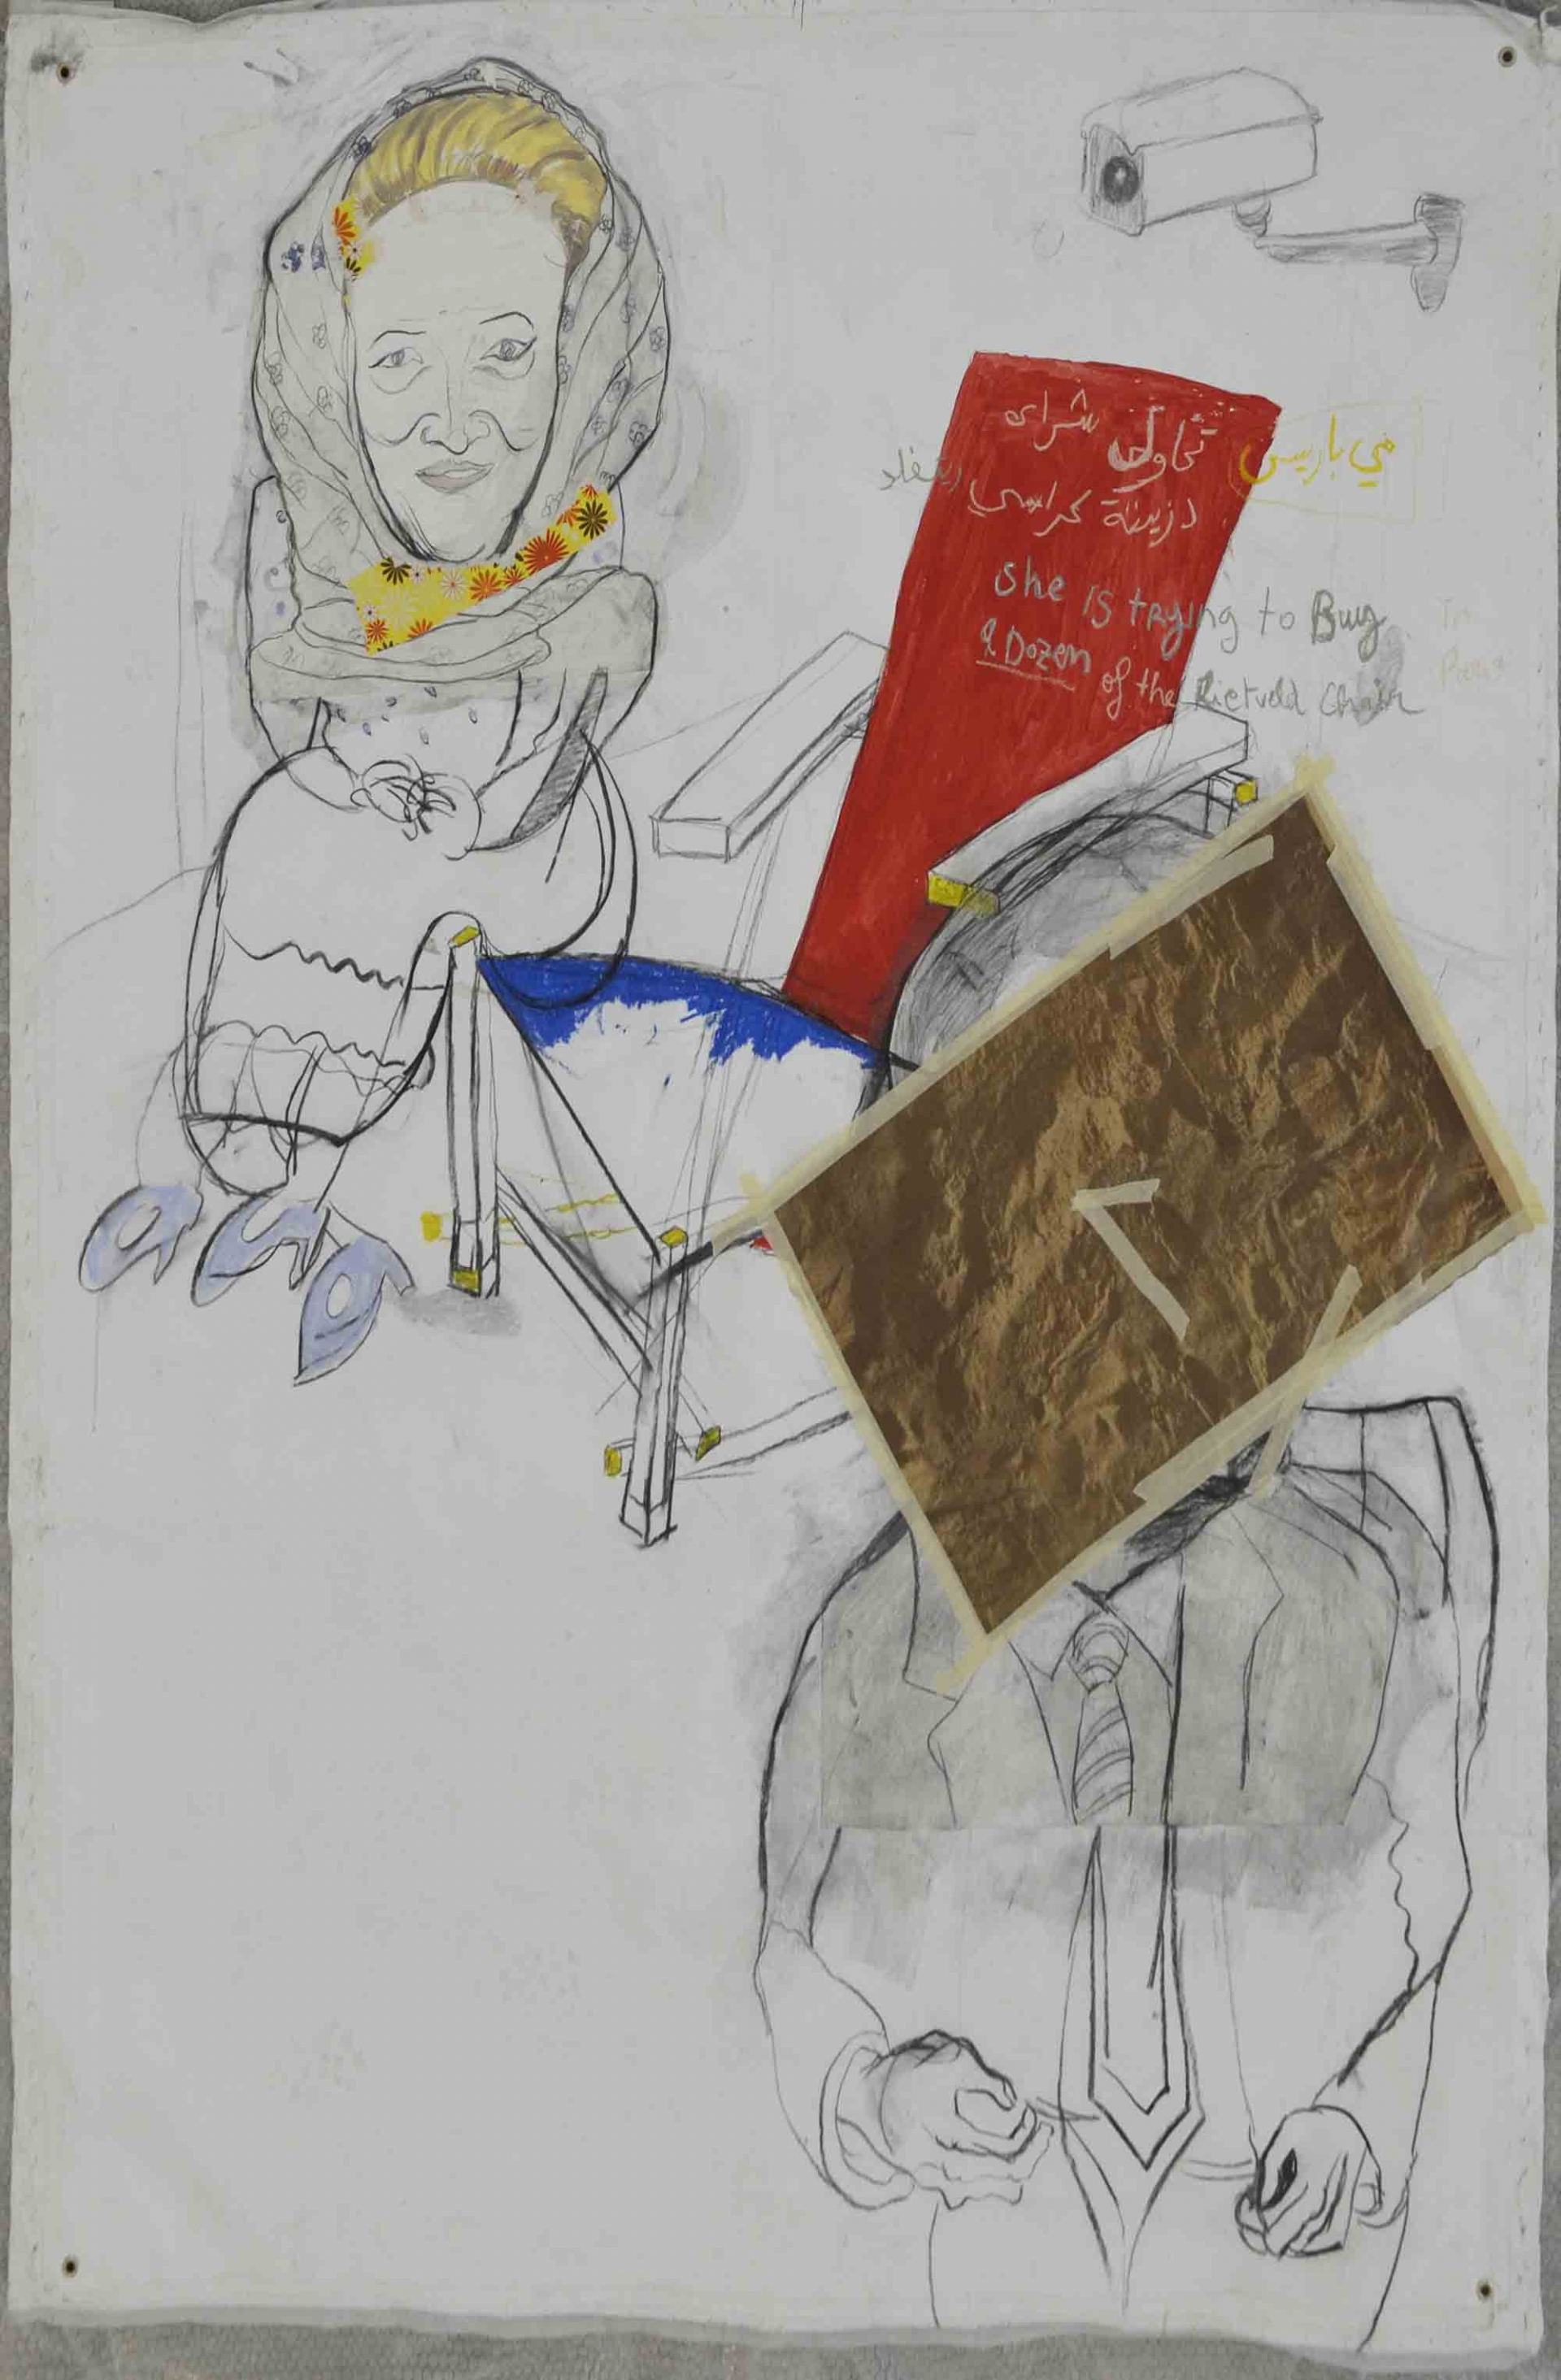 Reclining Man with Sculpture 4, 2008/2014, Mixed media on canvas, 205.5 x 160.5 cm